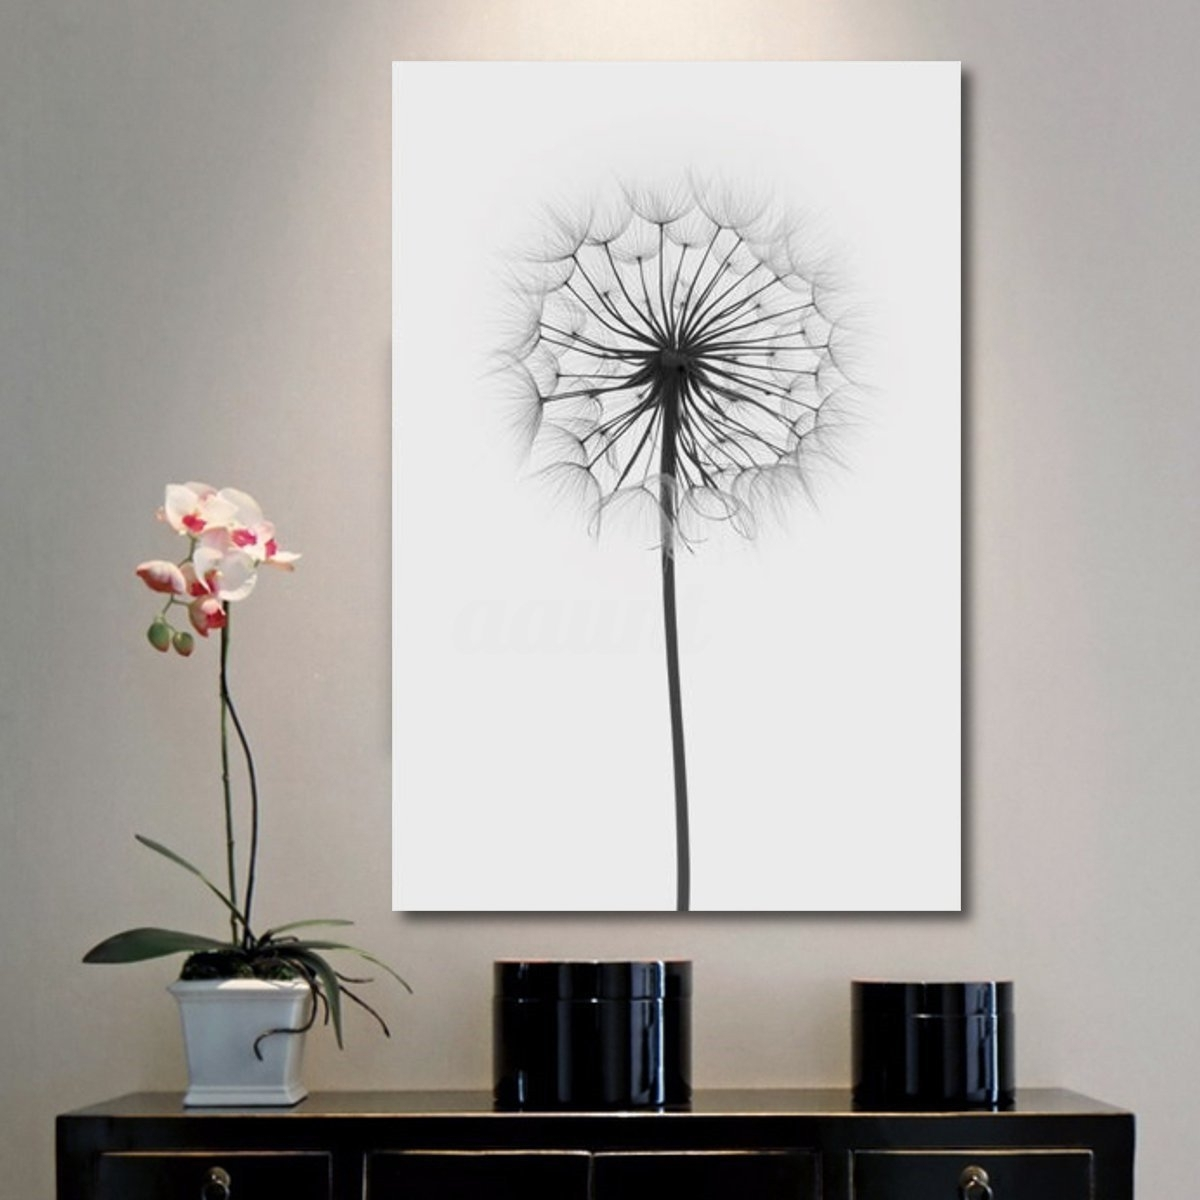 Minimalism Dandelion Canvas Print Painting Wall Art Pictures Home Intended For Recent Dandelion Canvas Wall Art (Gallery 9 of 15)